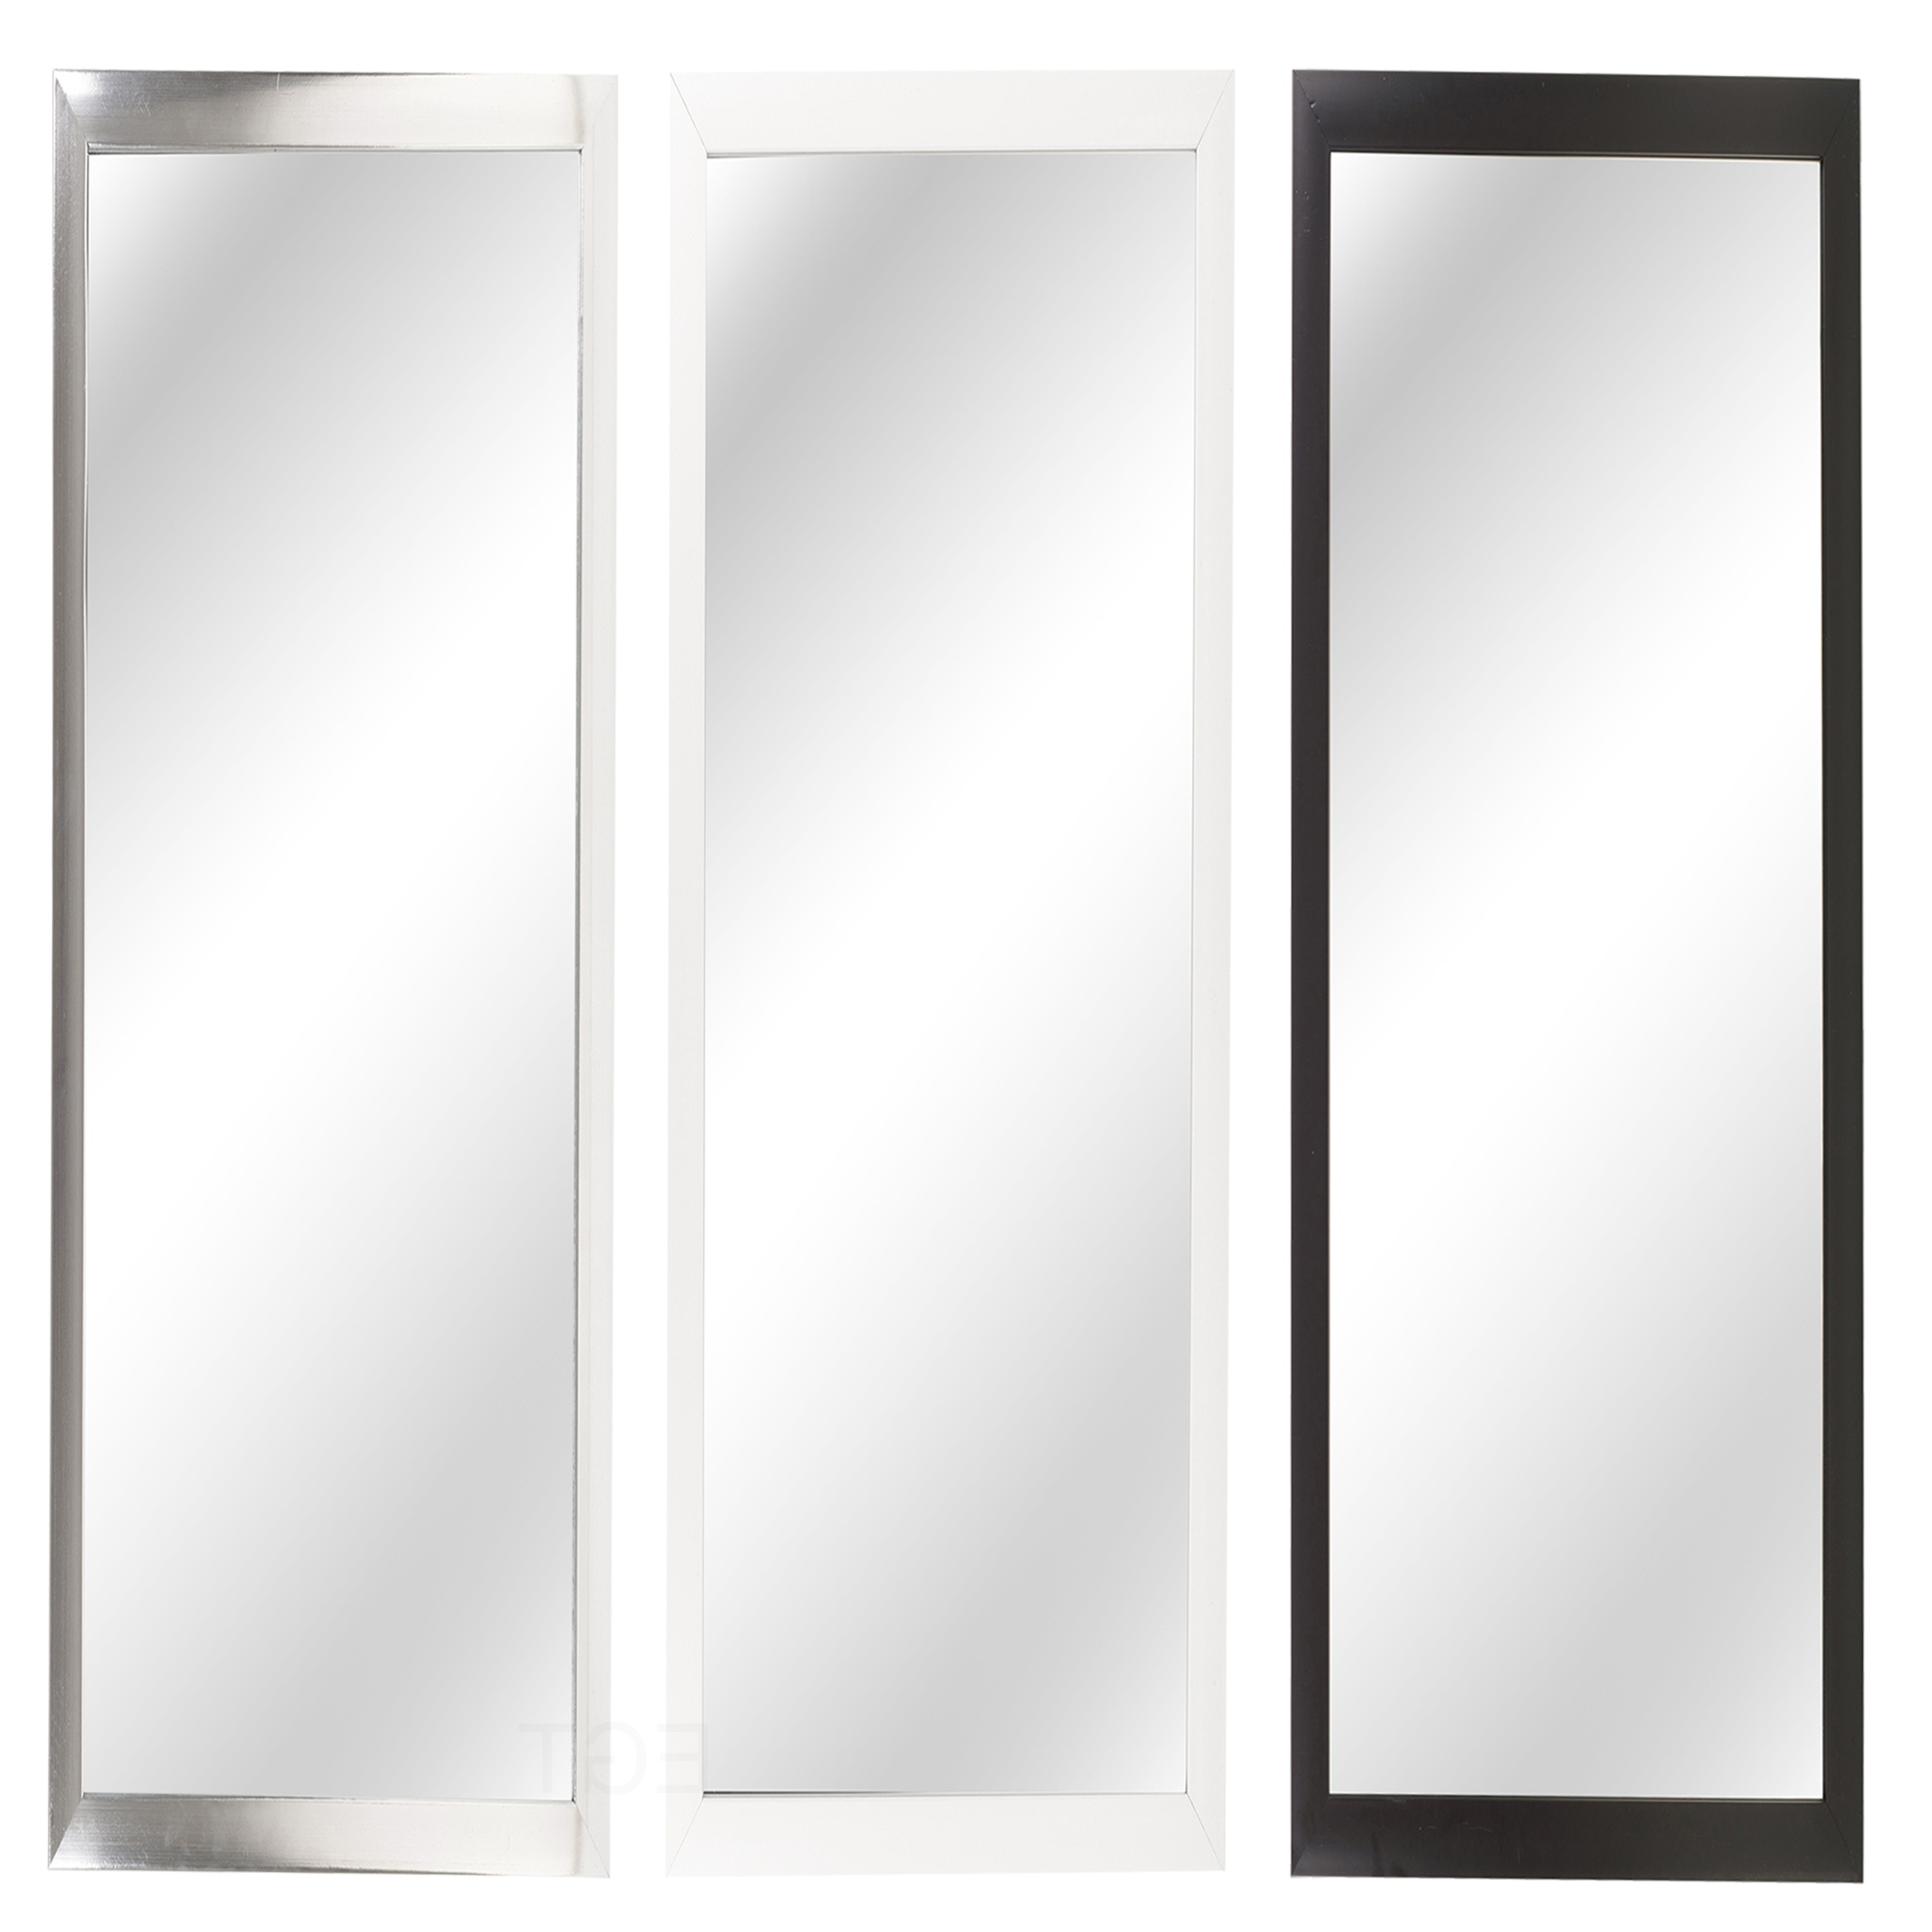 Preferred Landscape Wall Mirrors With Details About Large Long Wall Mirror Leaner Full Length Floor Bedroom Furniture Hanging Dress (View 7 of 20)